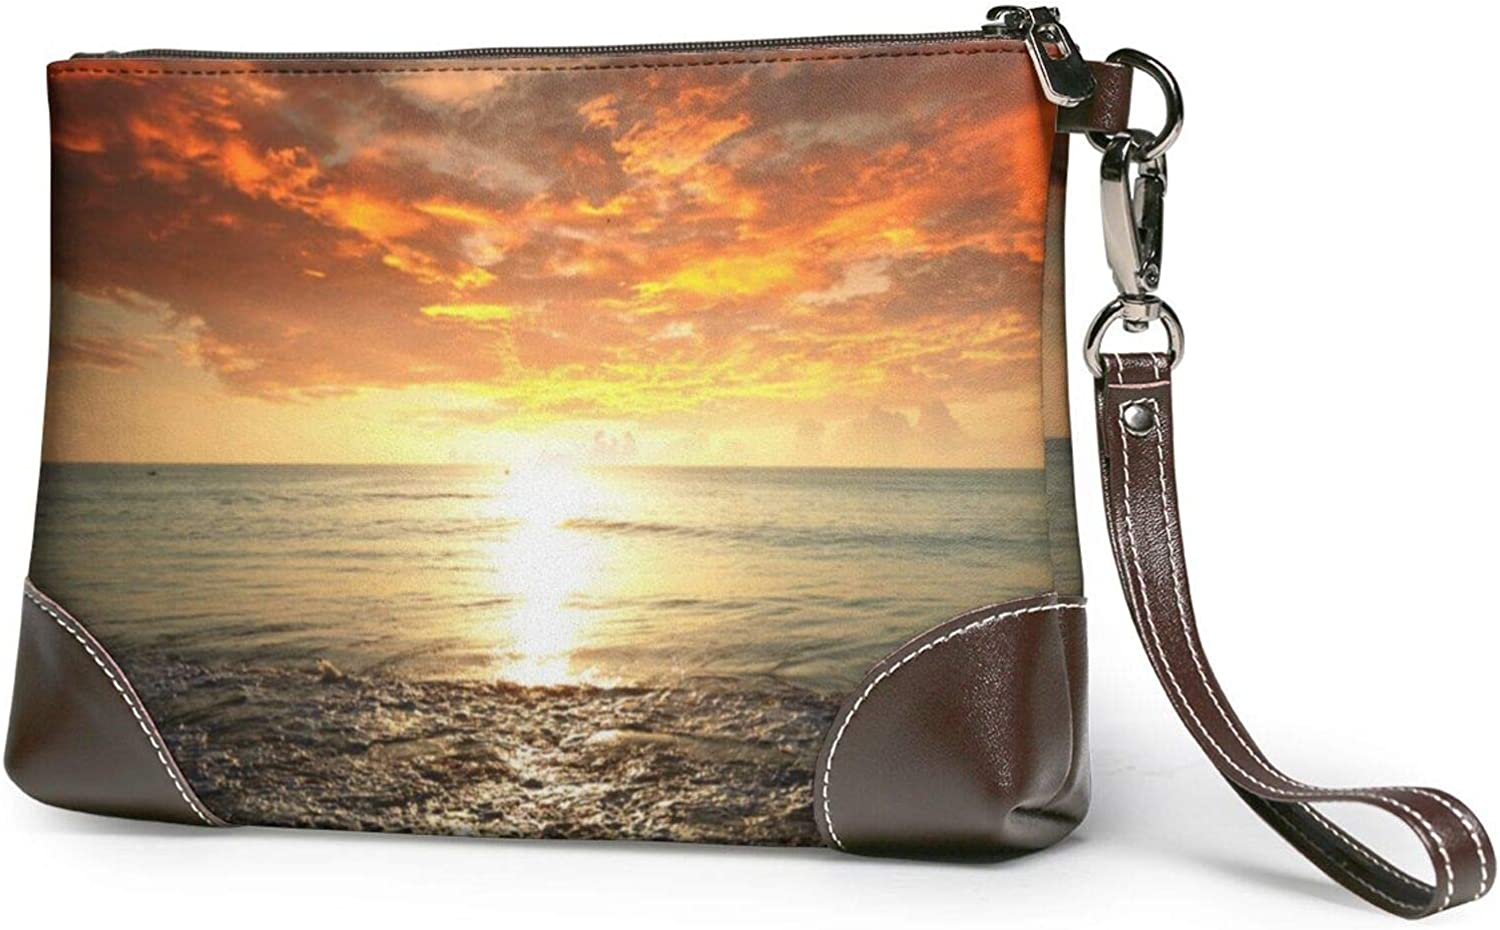 Sunset Ocean Chicago Mall Beach Clutch Wallet Leather Wristlet Purses Limited Special Price